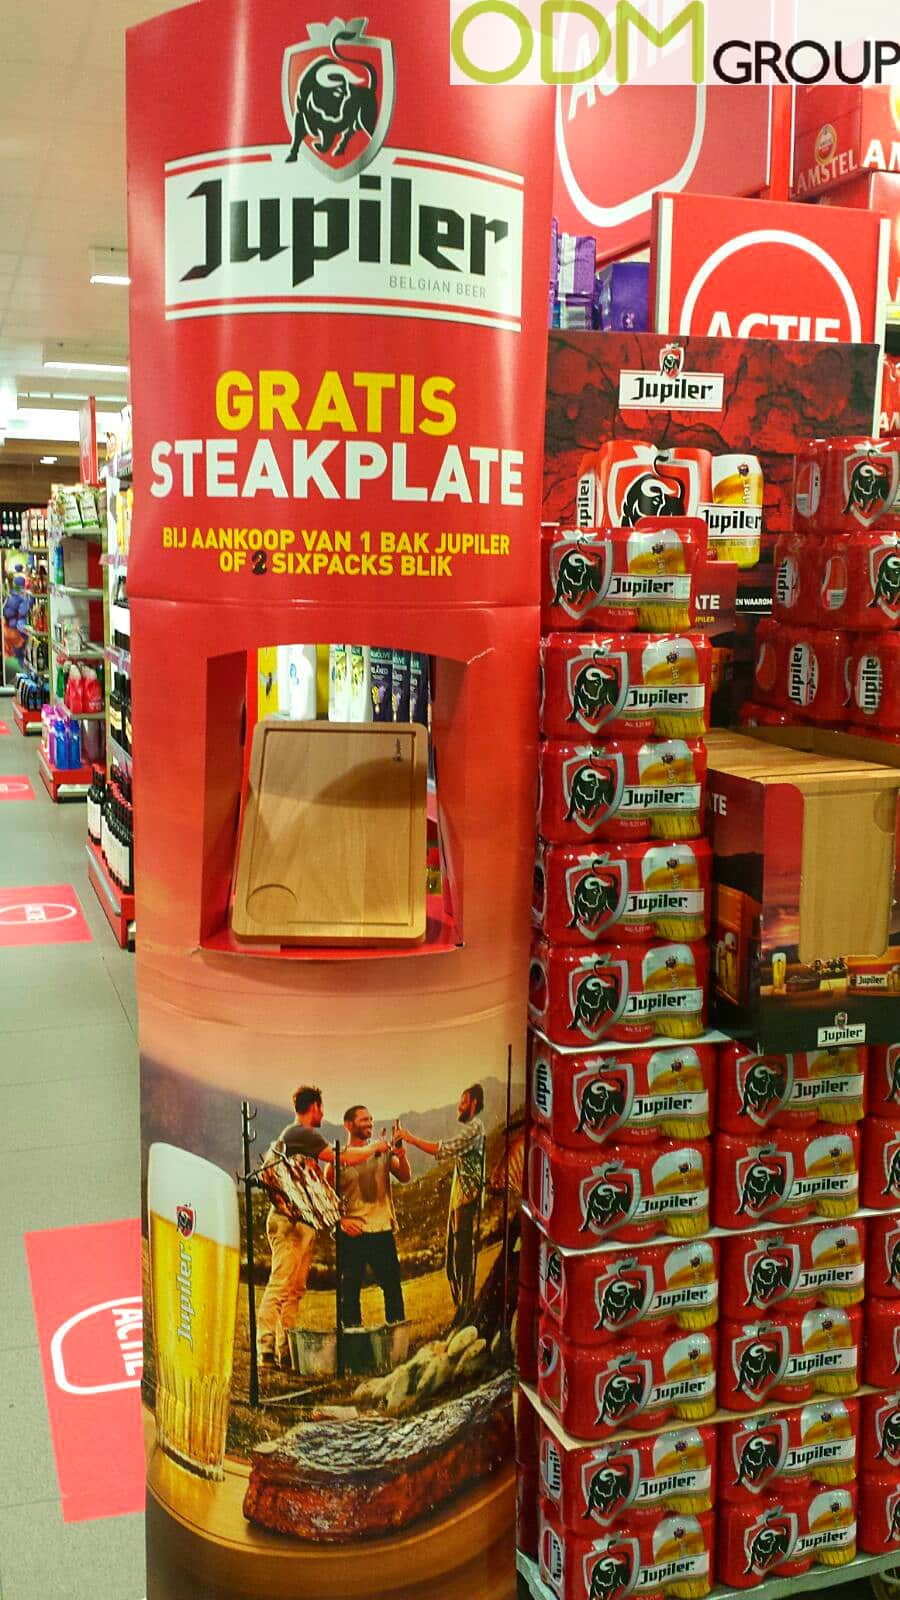 In Store Promotion - Branded Steak Plate by Jupiler